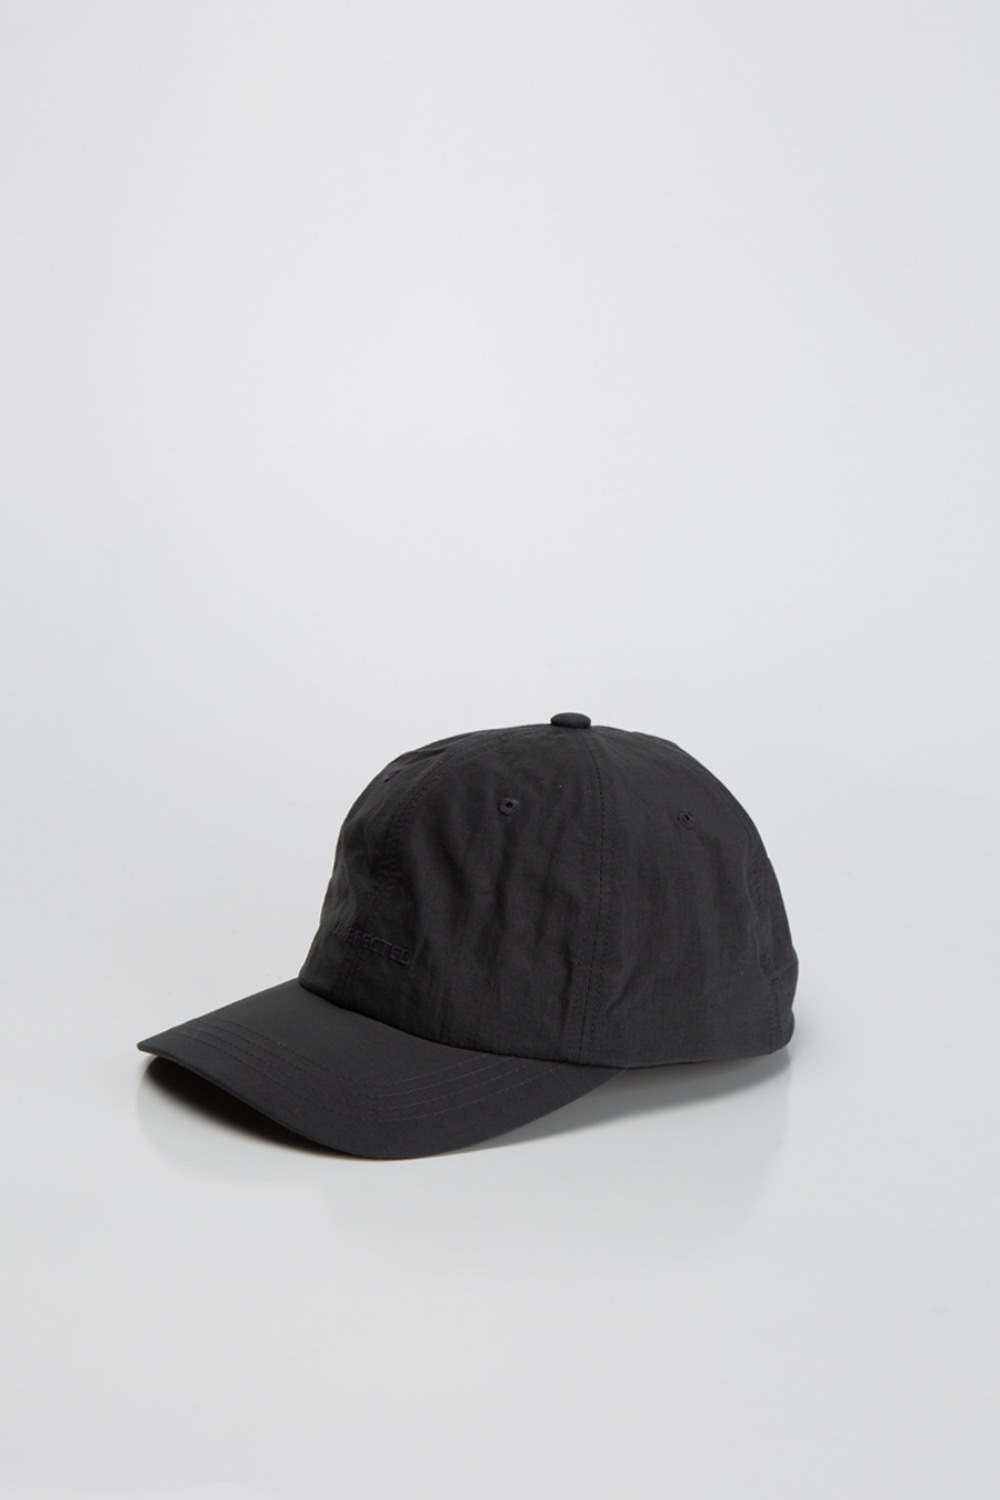 LOGO DRAWSTRING BALL CAP CHARCOAL